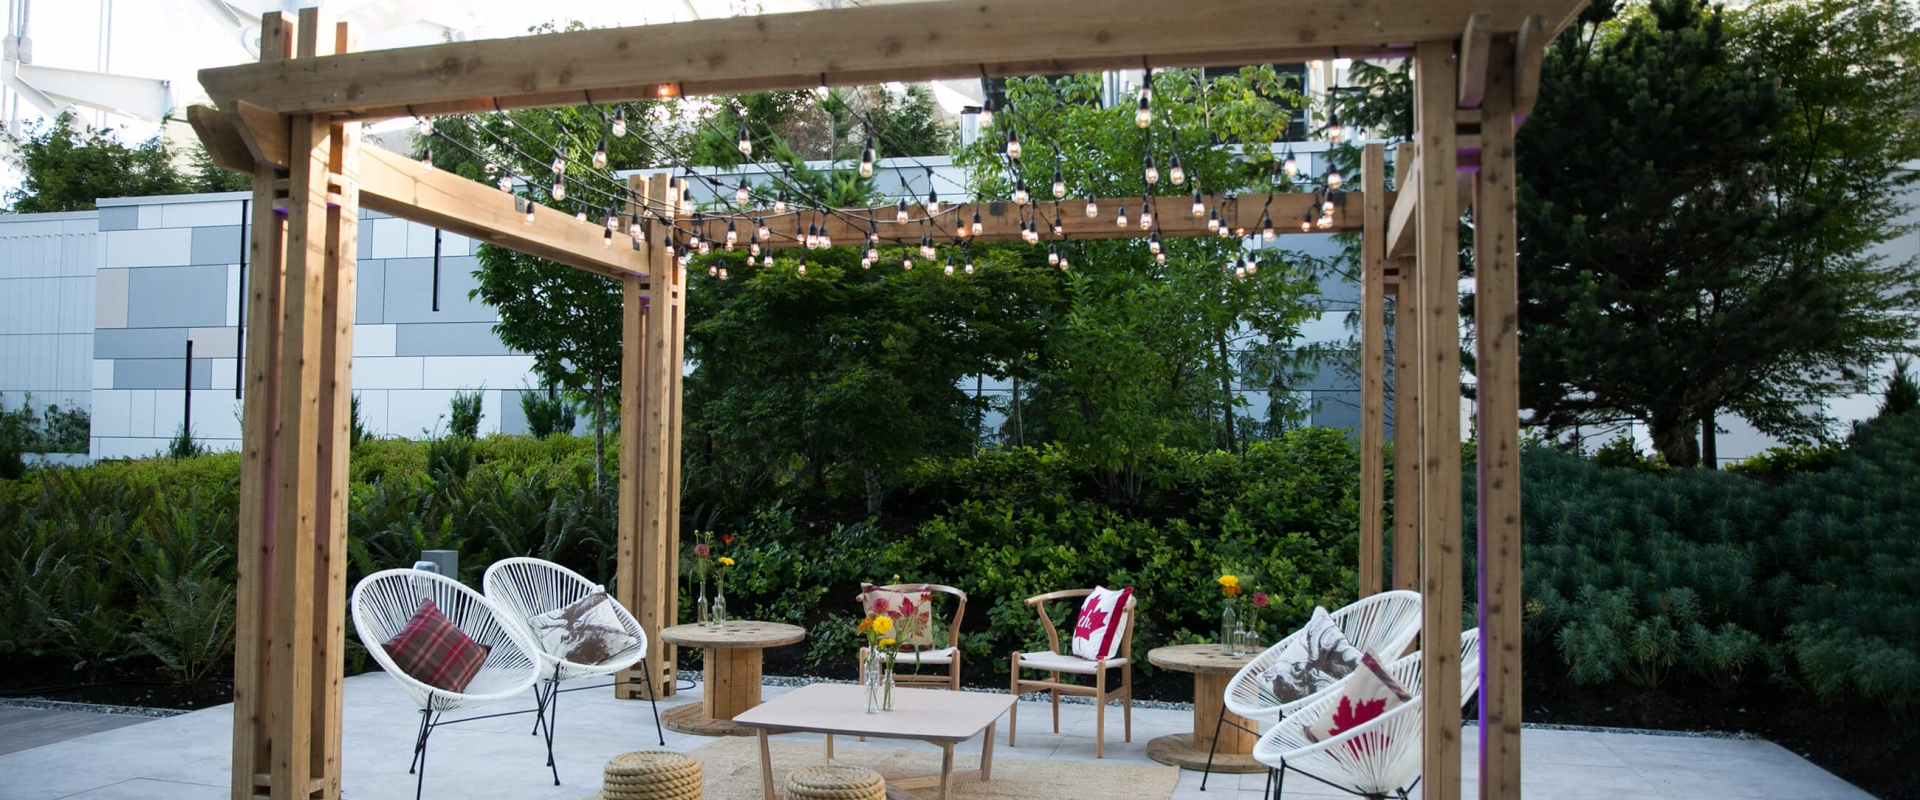 Outdoor seating area at Parq Vancouver with string lights